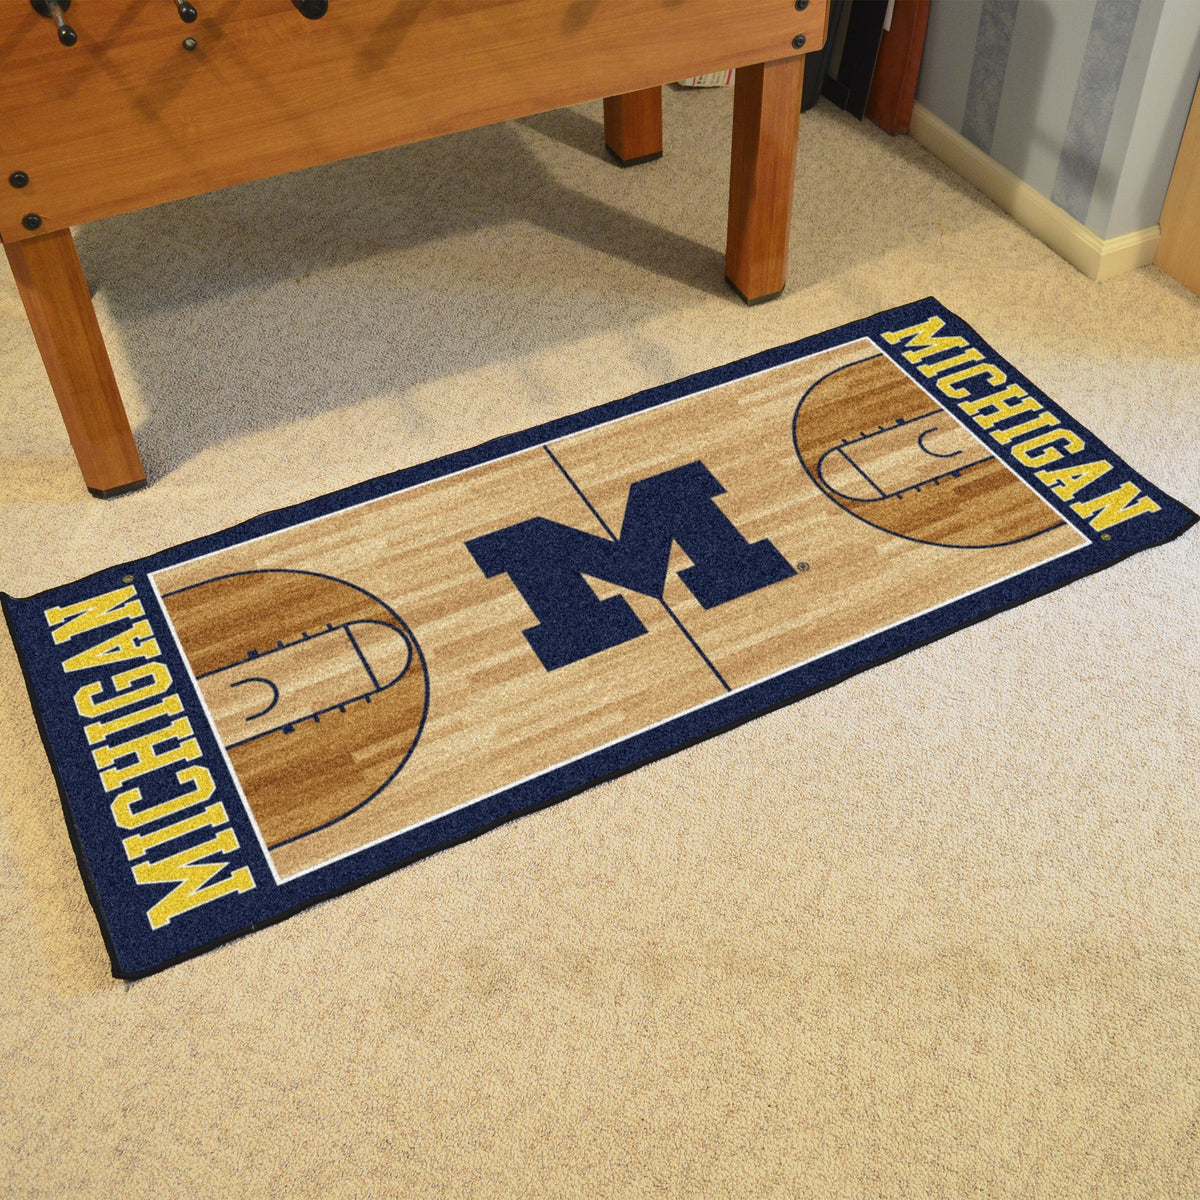 Collegiate - NCAA Basketball Runner Collegiate Mats, Rectangular Mats, NCAA Basketball Runner, Collegiate, Home Fan Mats Michigan